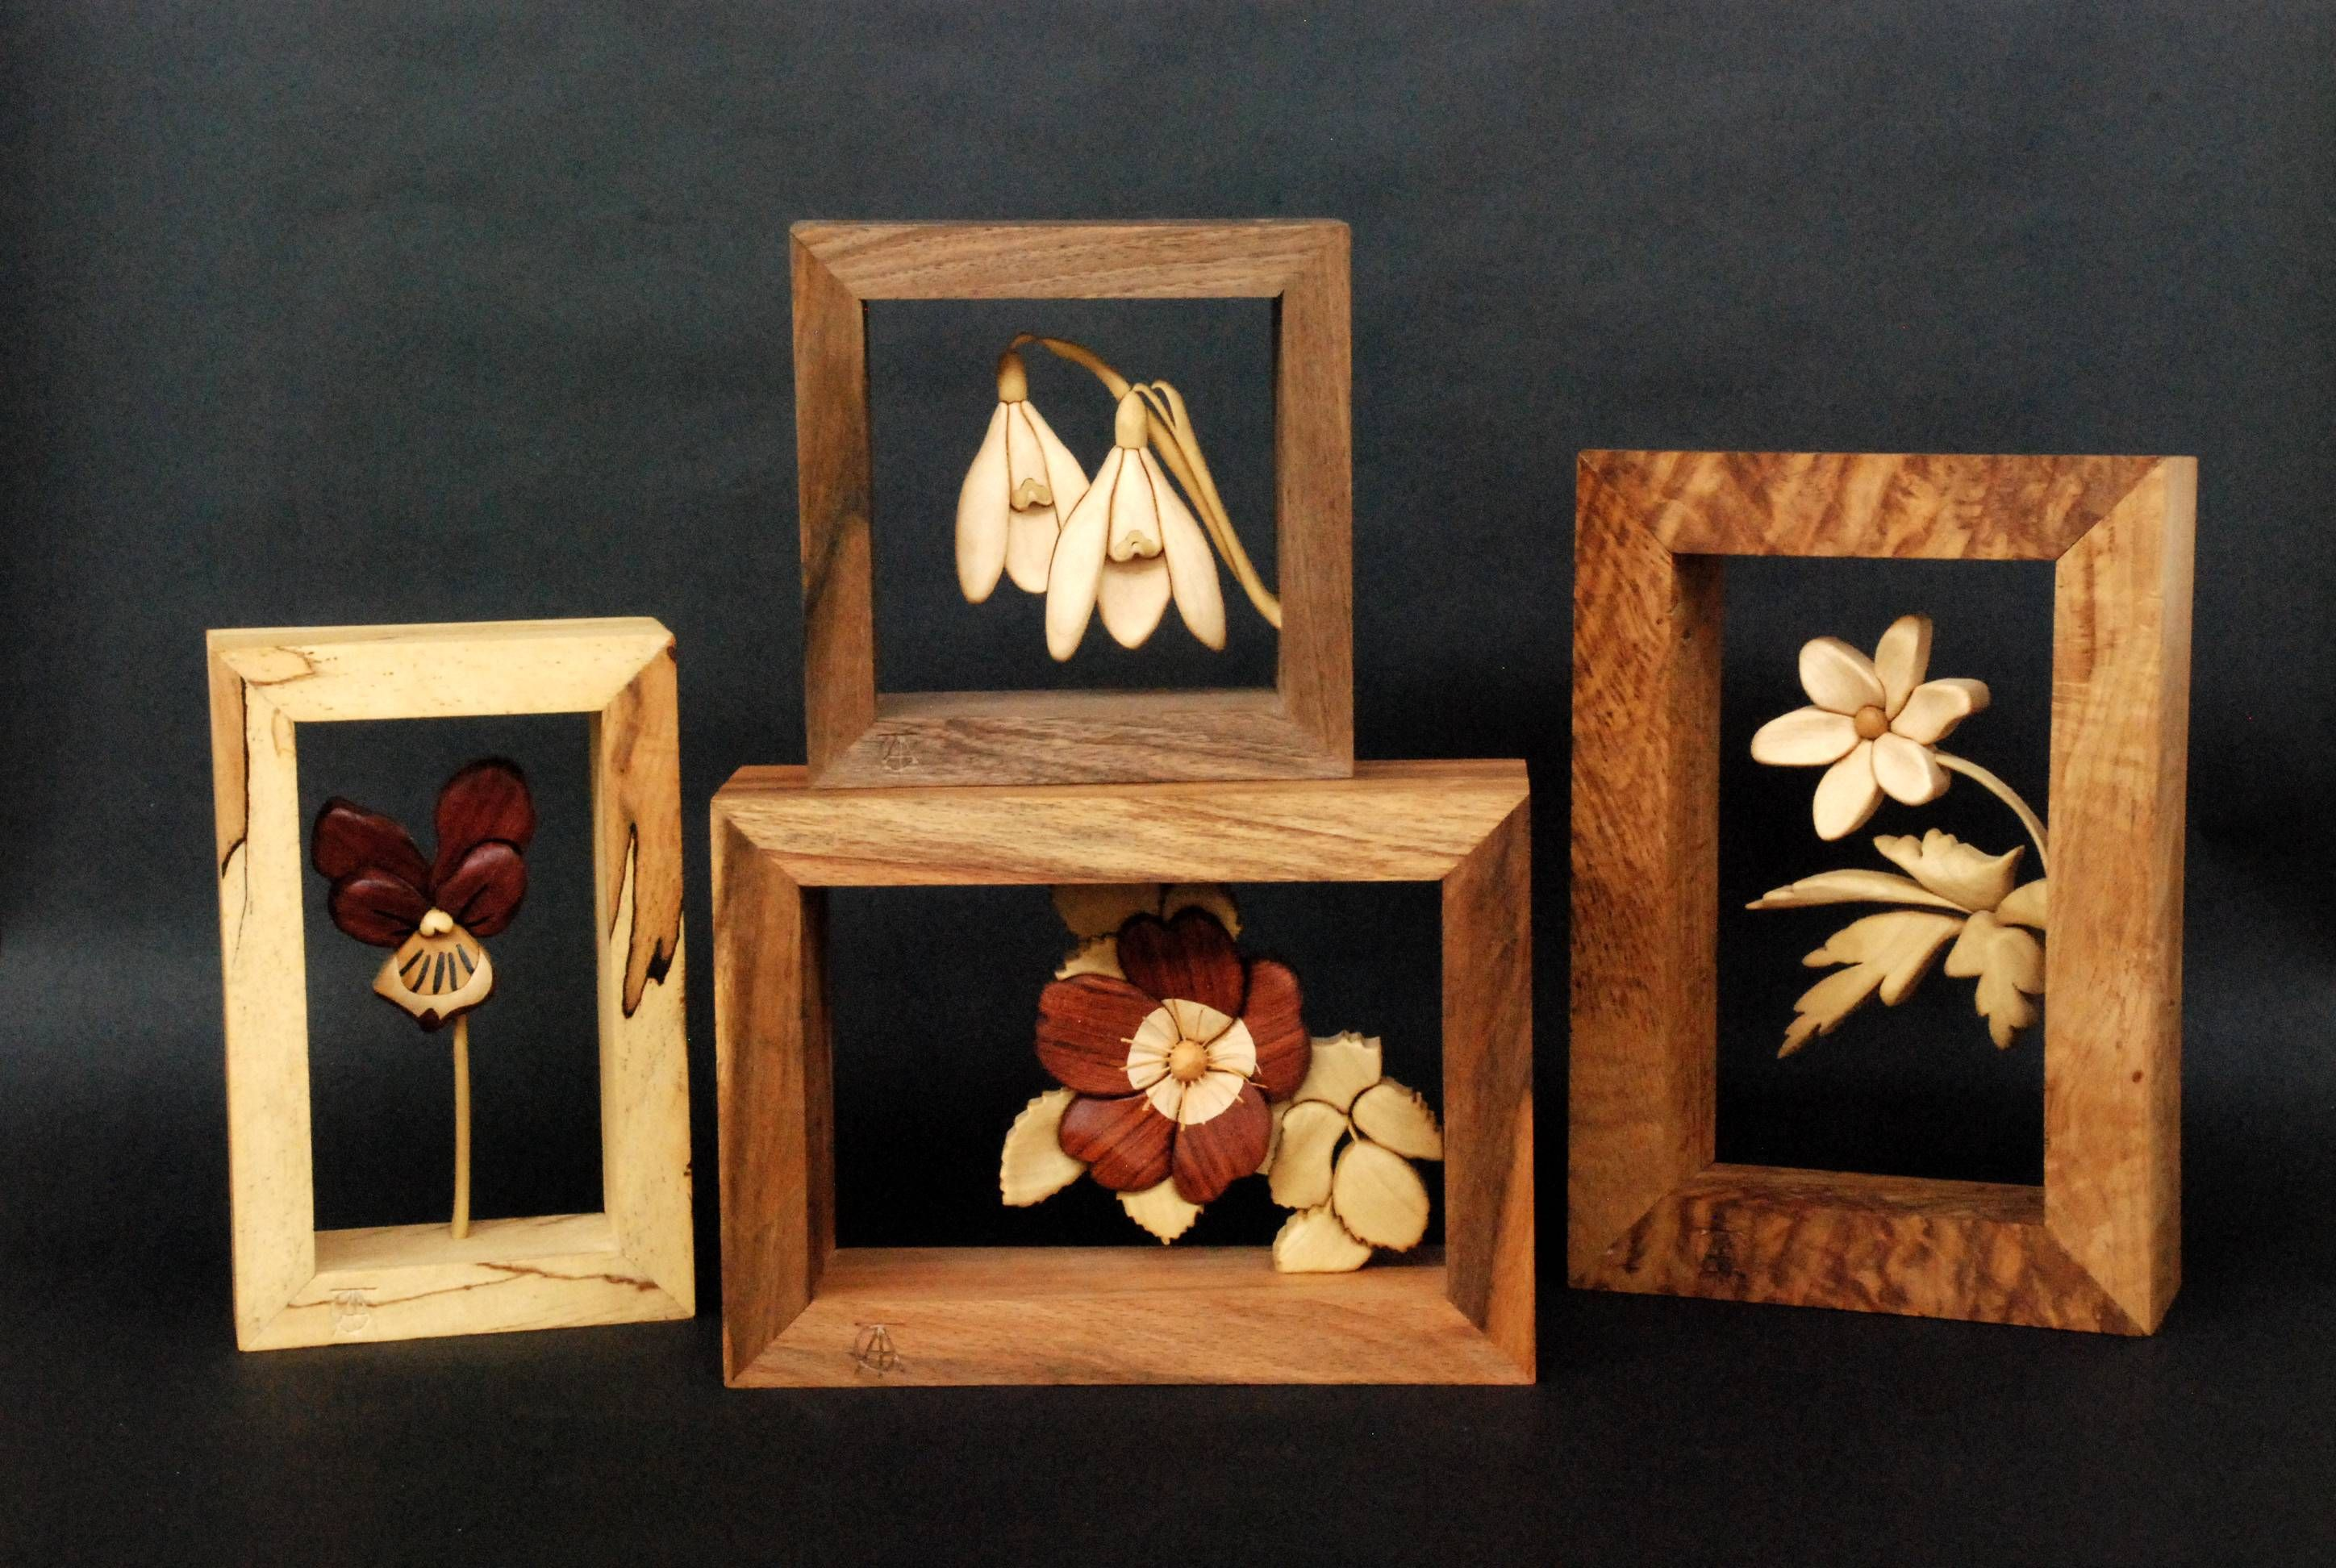 Amazing Intarsia Creations by T.A.G Smith